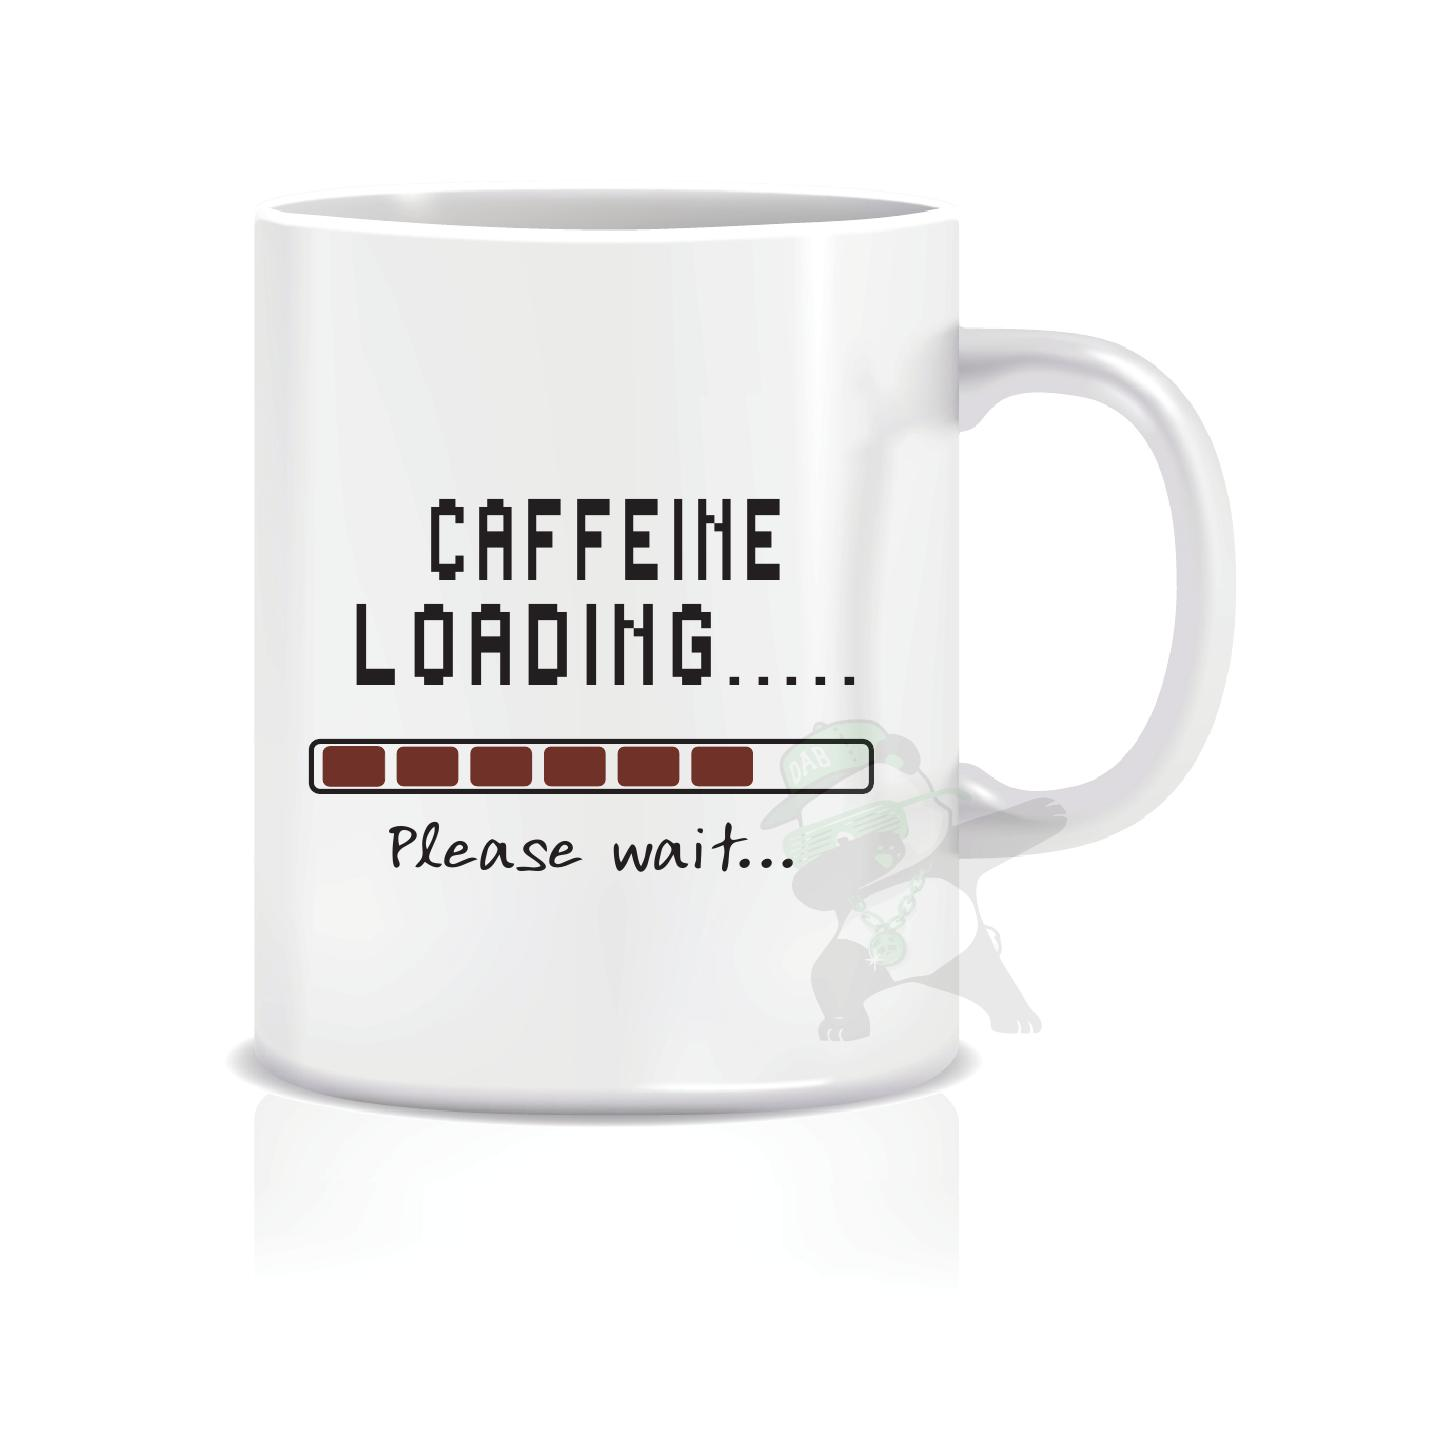 Caffeine Loading....Please Wait